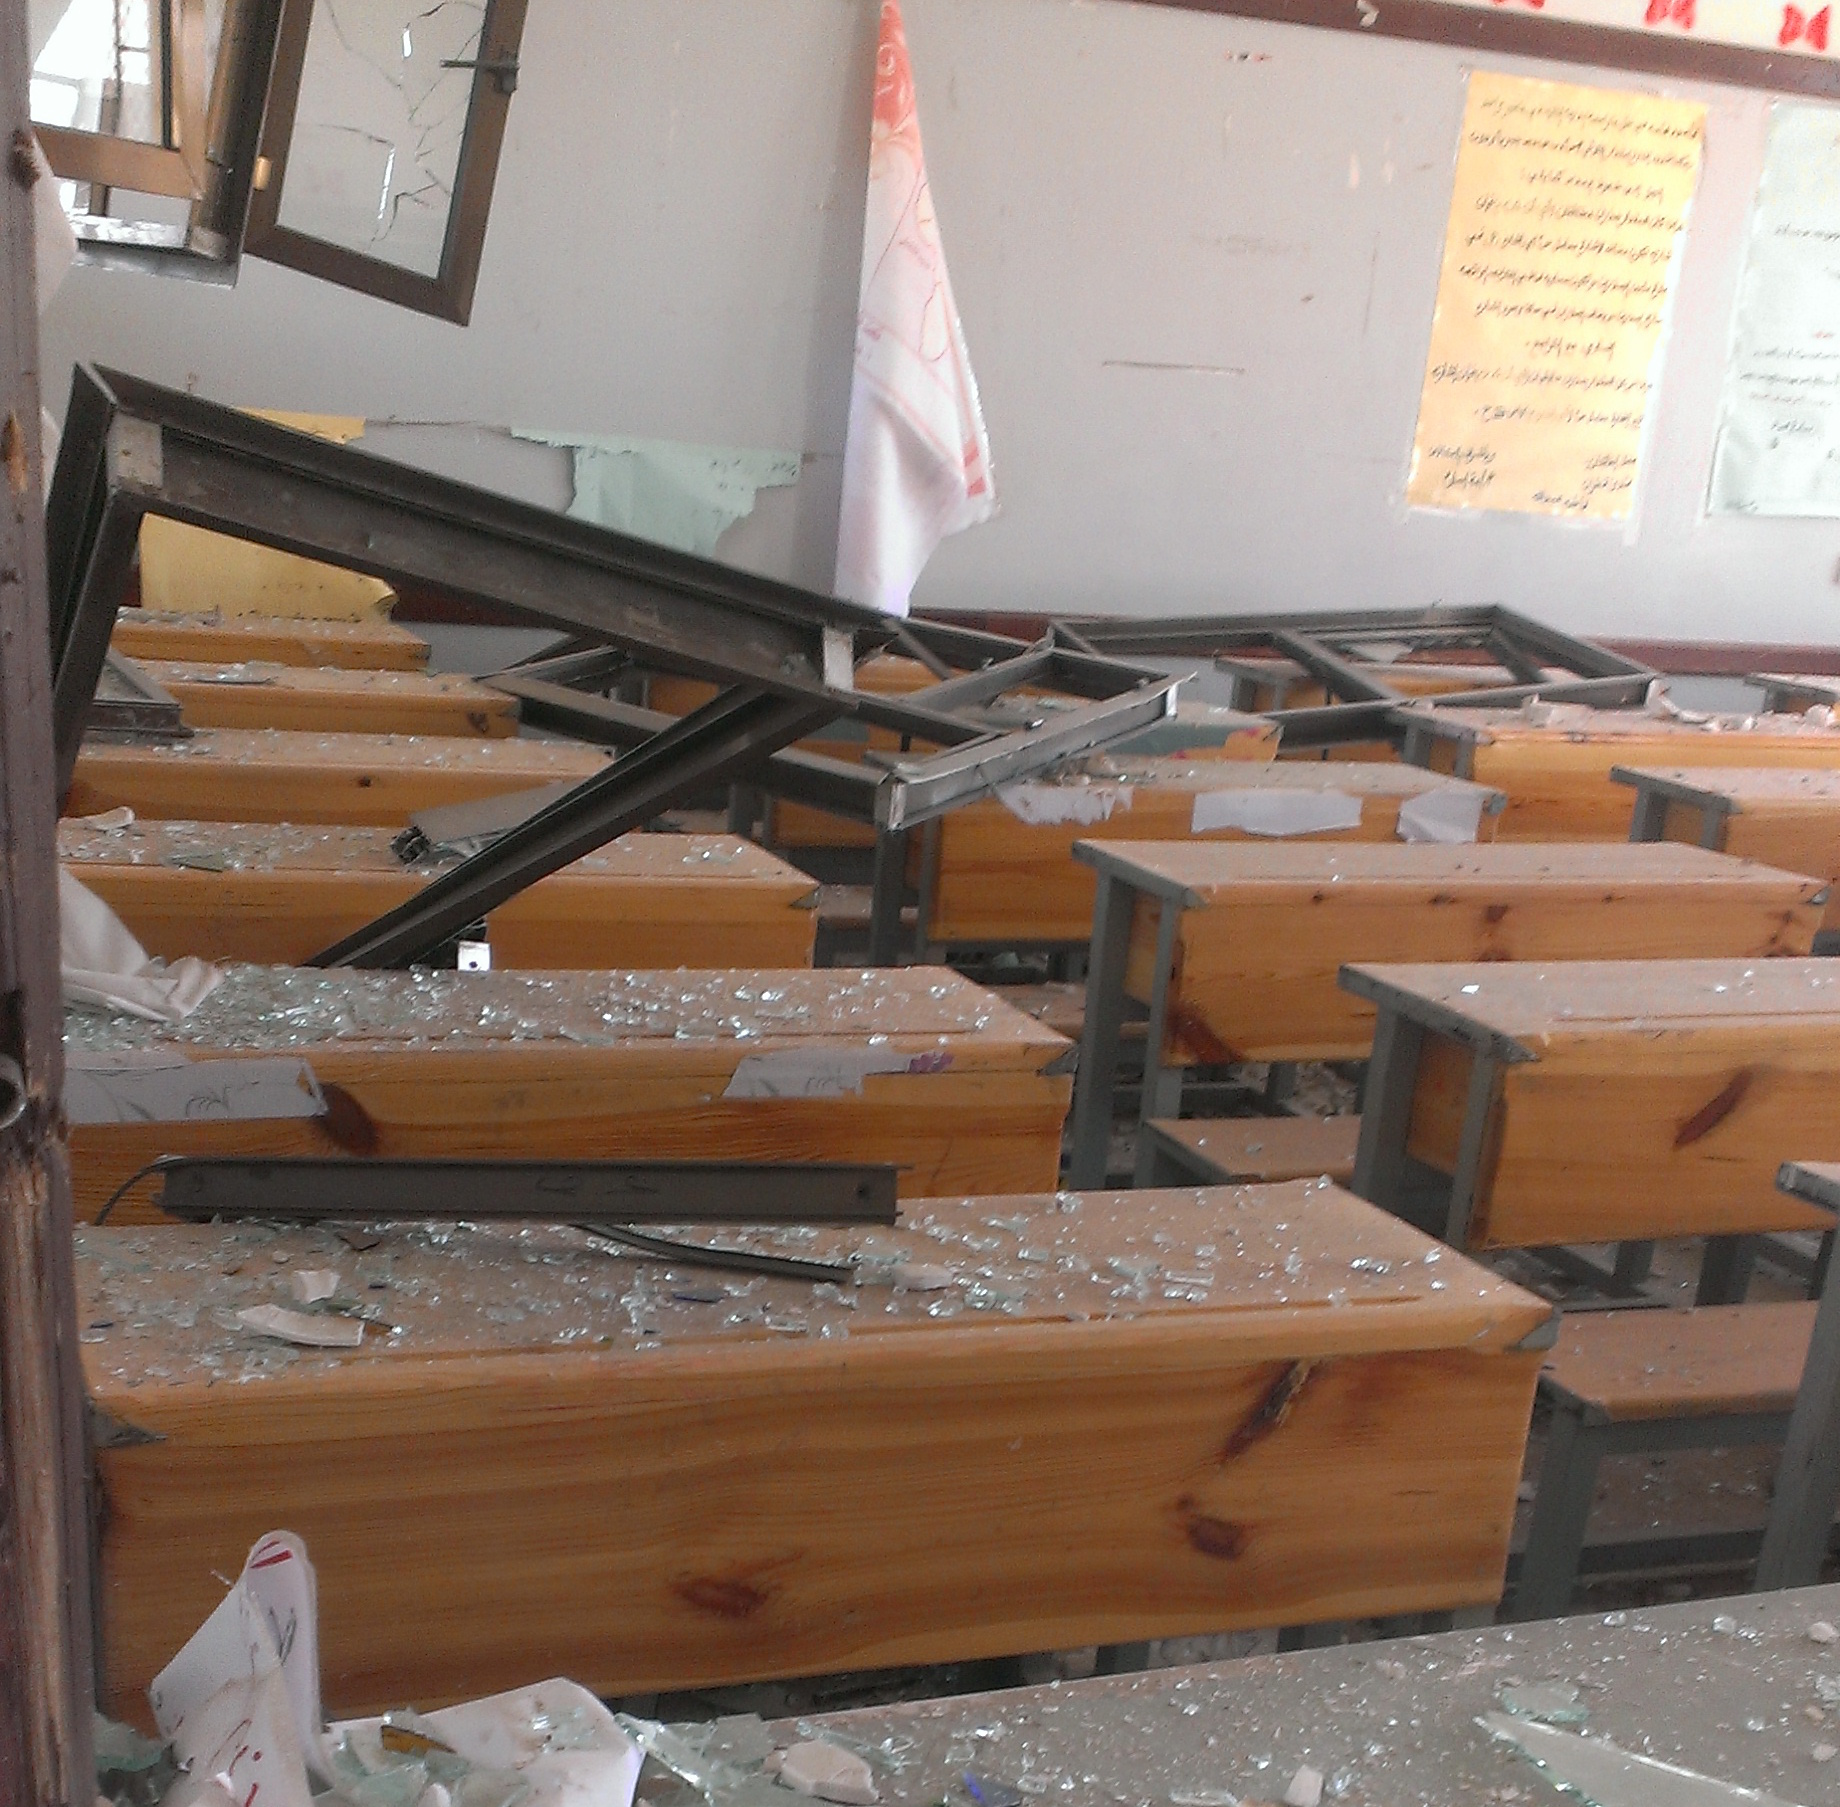 Ibn Sena school in Faj Attaan district, Sanaa, after being hit by an airstrike in May 2015